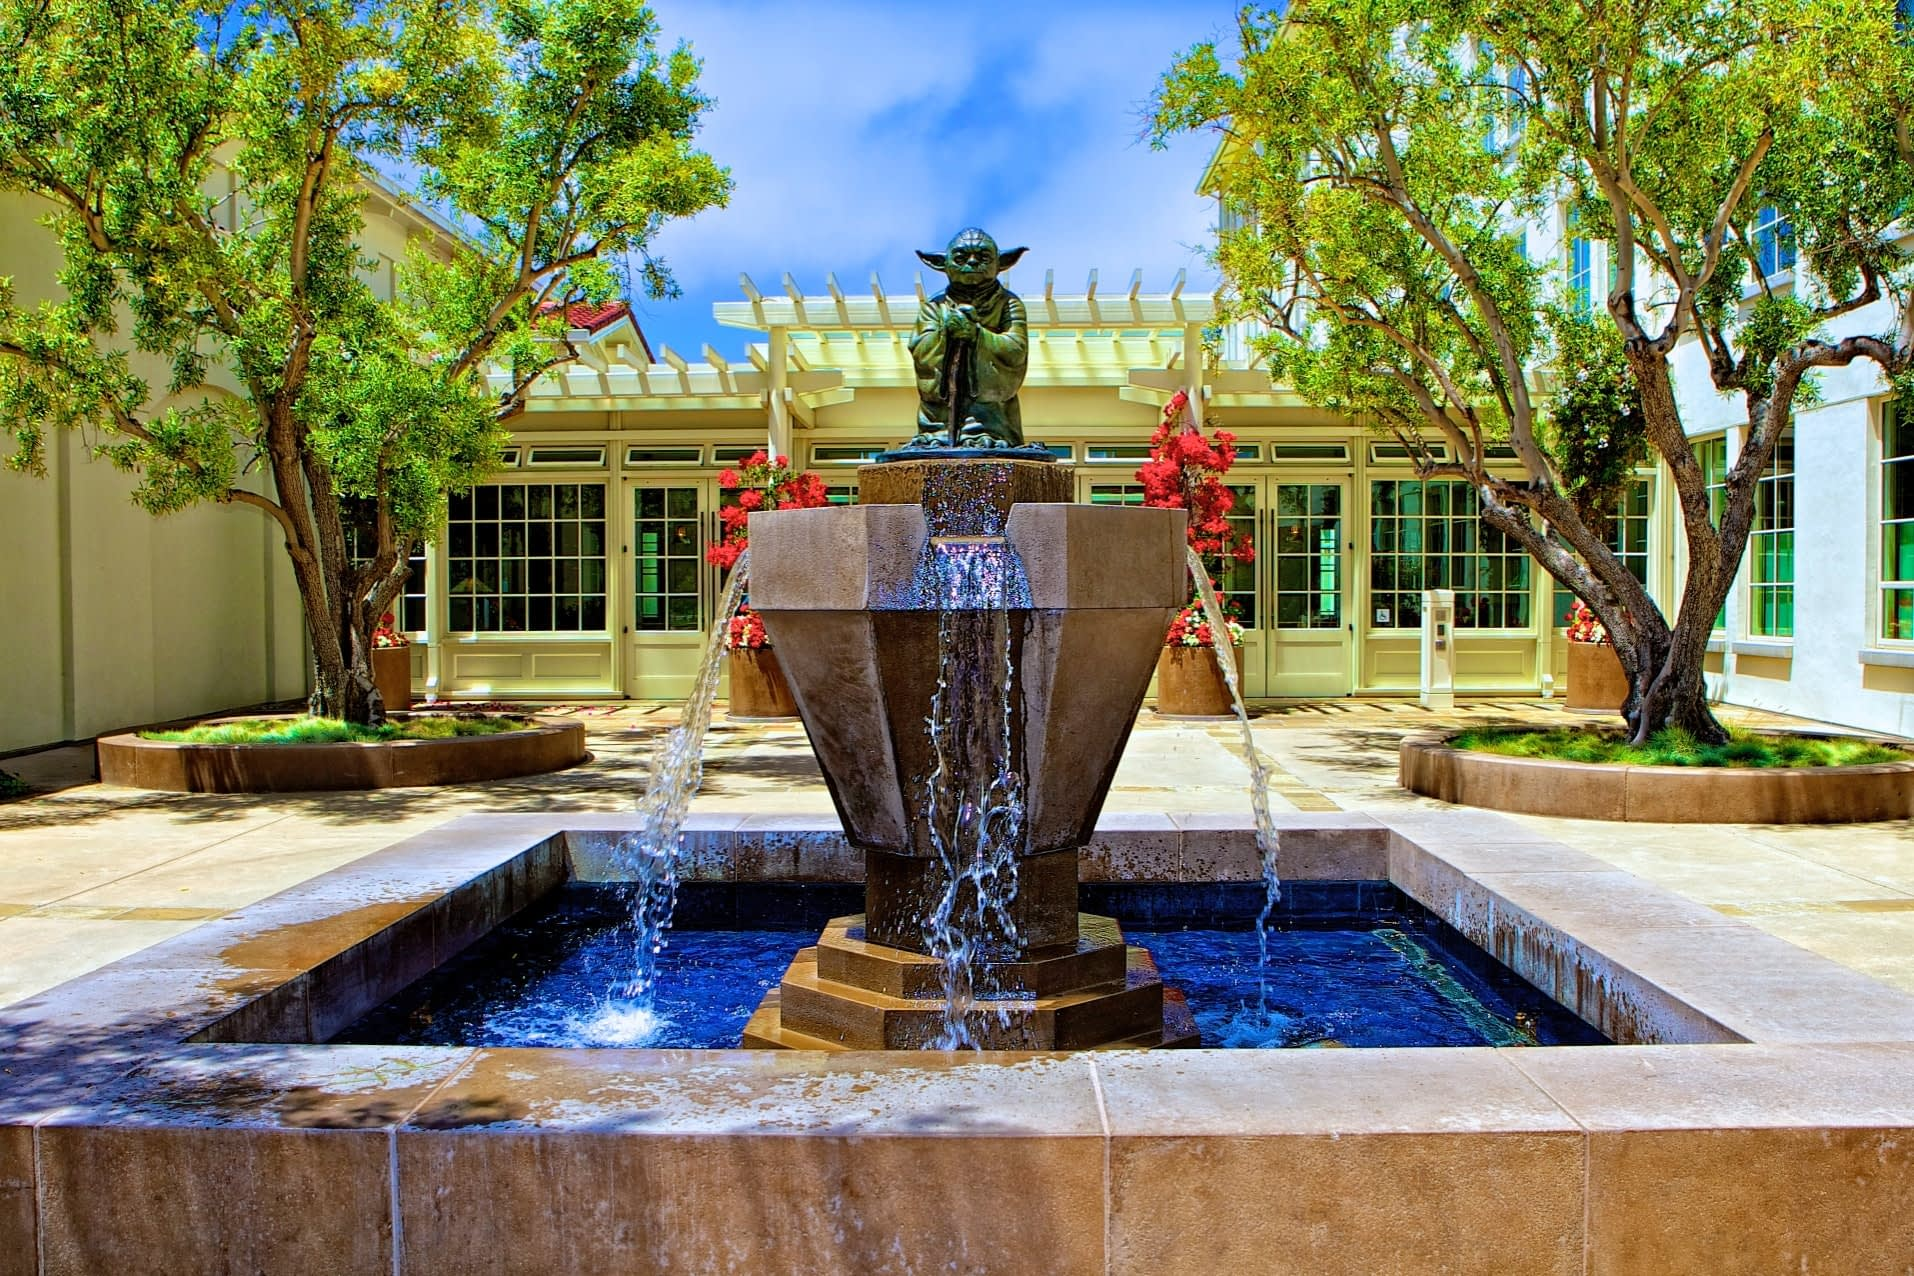 We maintain ornate fountains